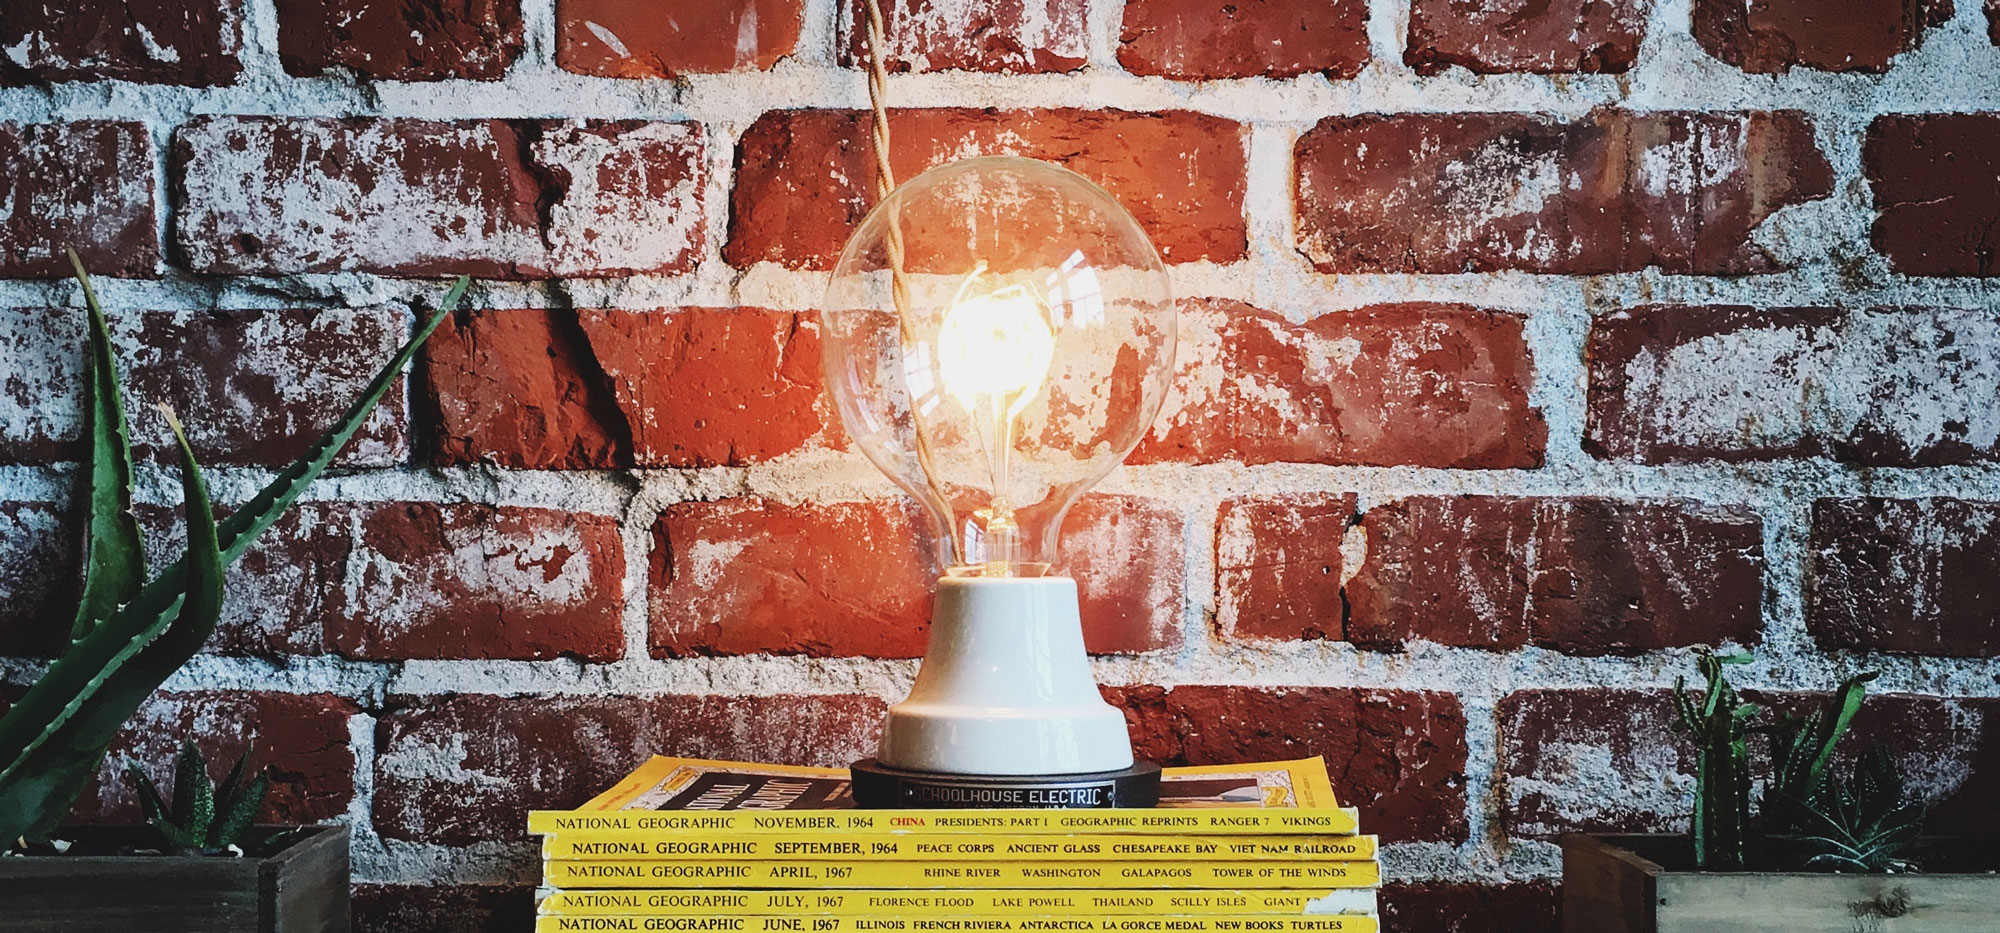 A lightbulb resting on a pile of magazines